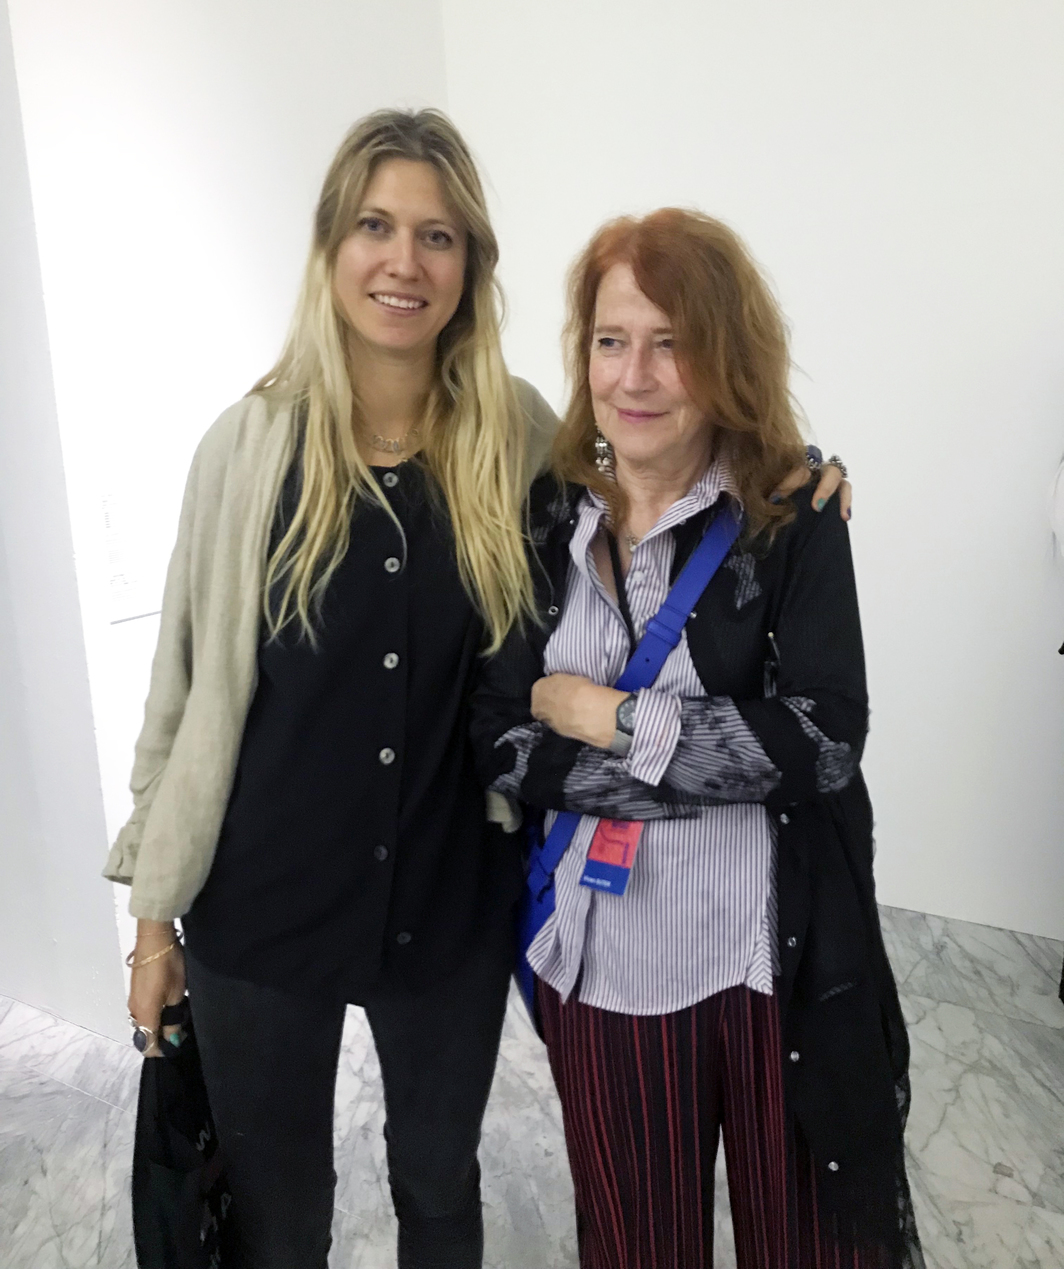 Artist Vivian Sutter (right) and Feodora Pallas.